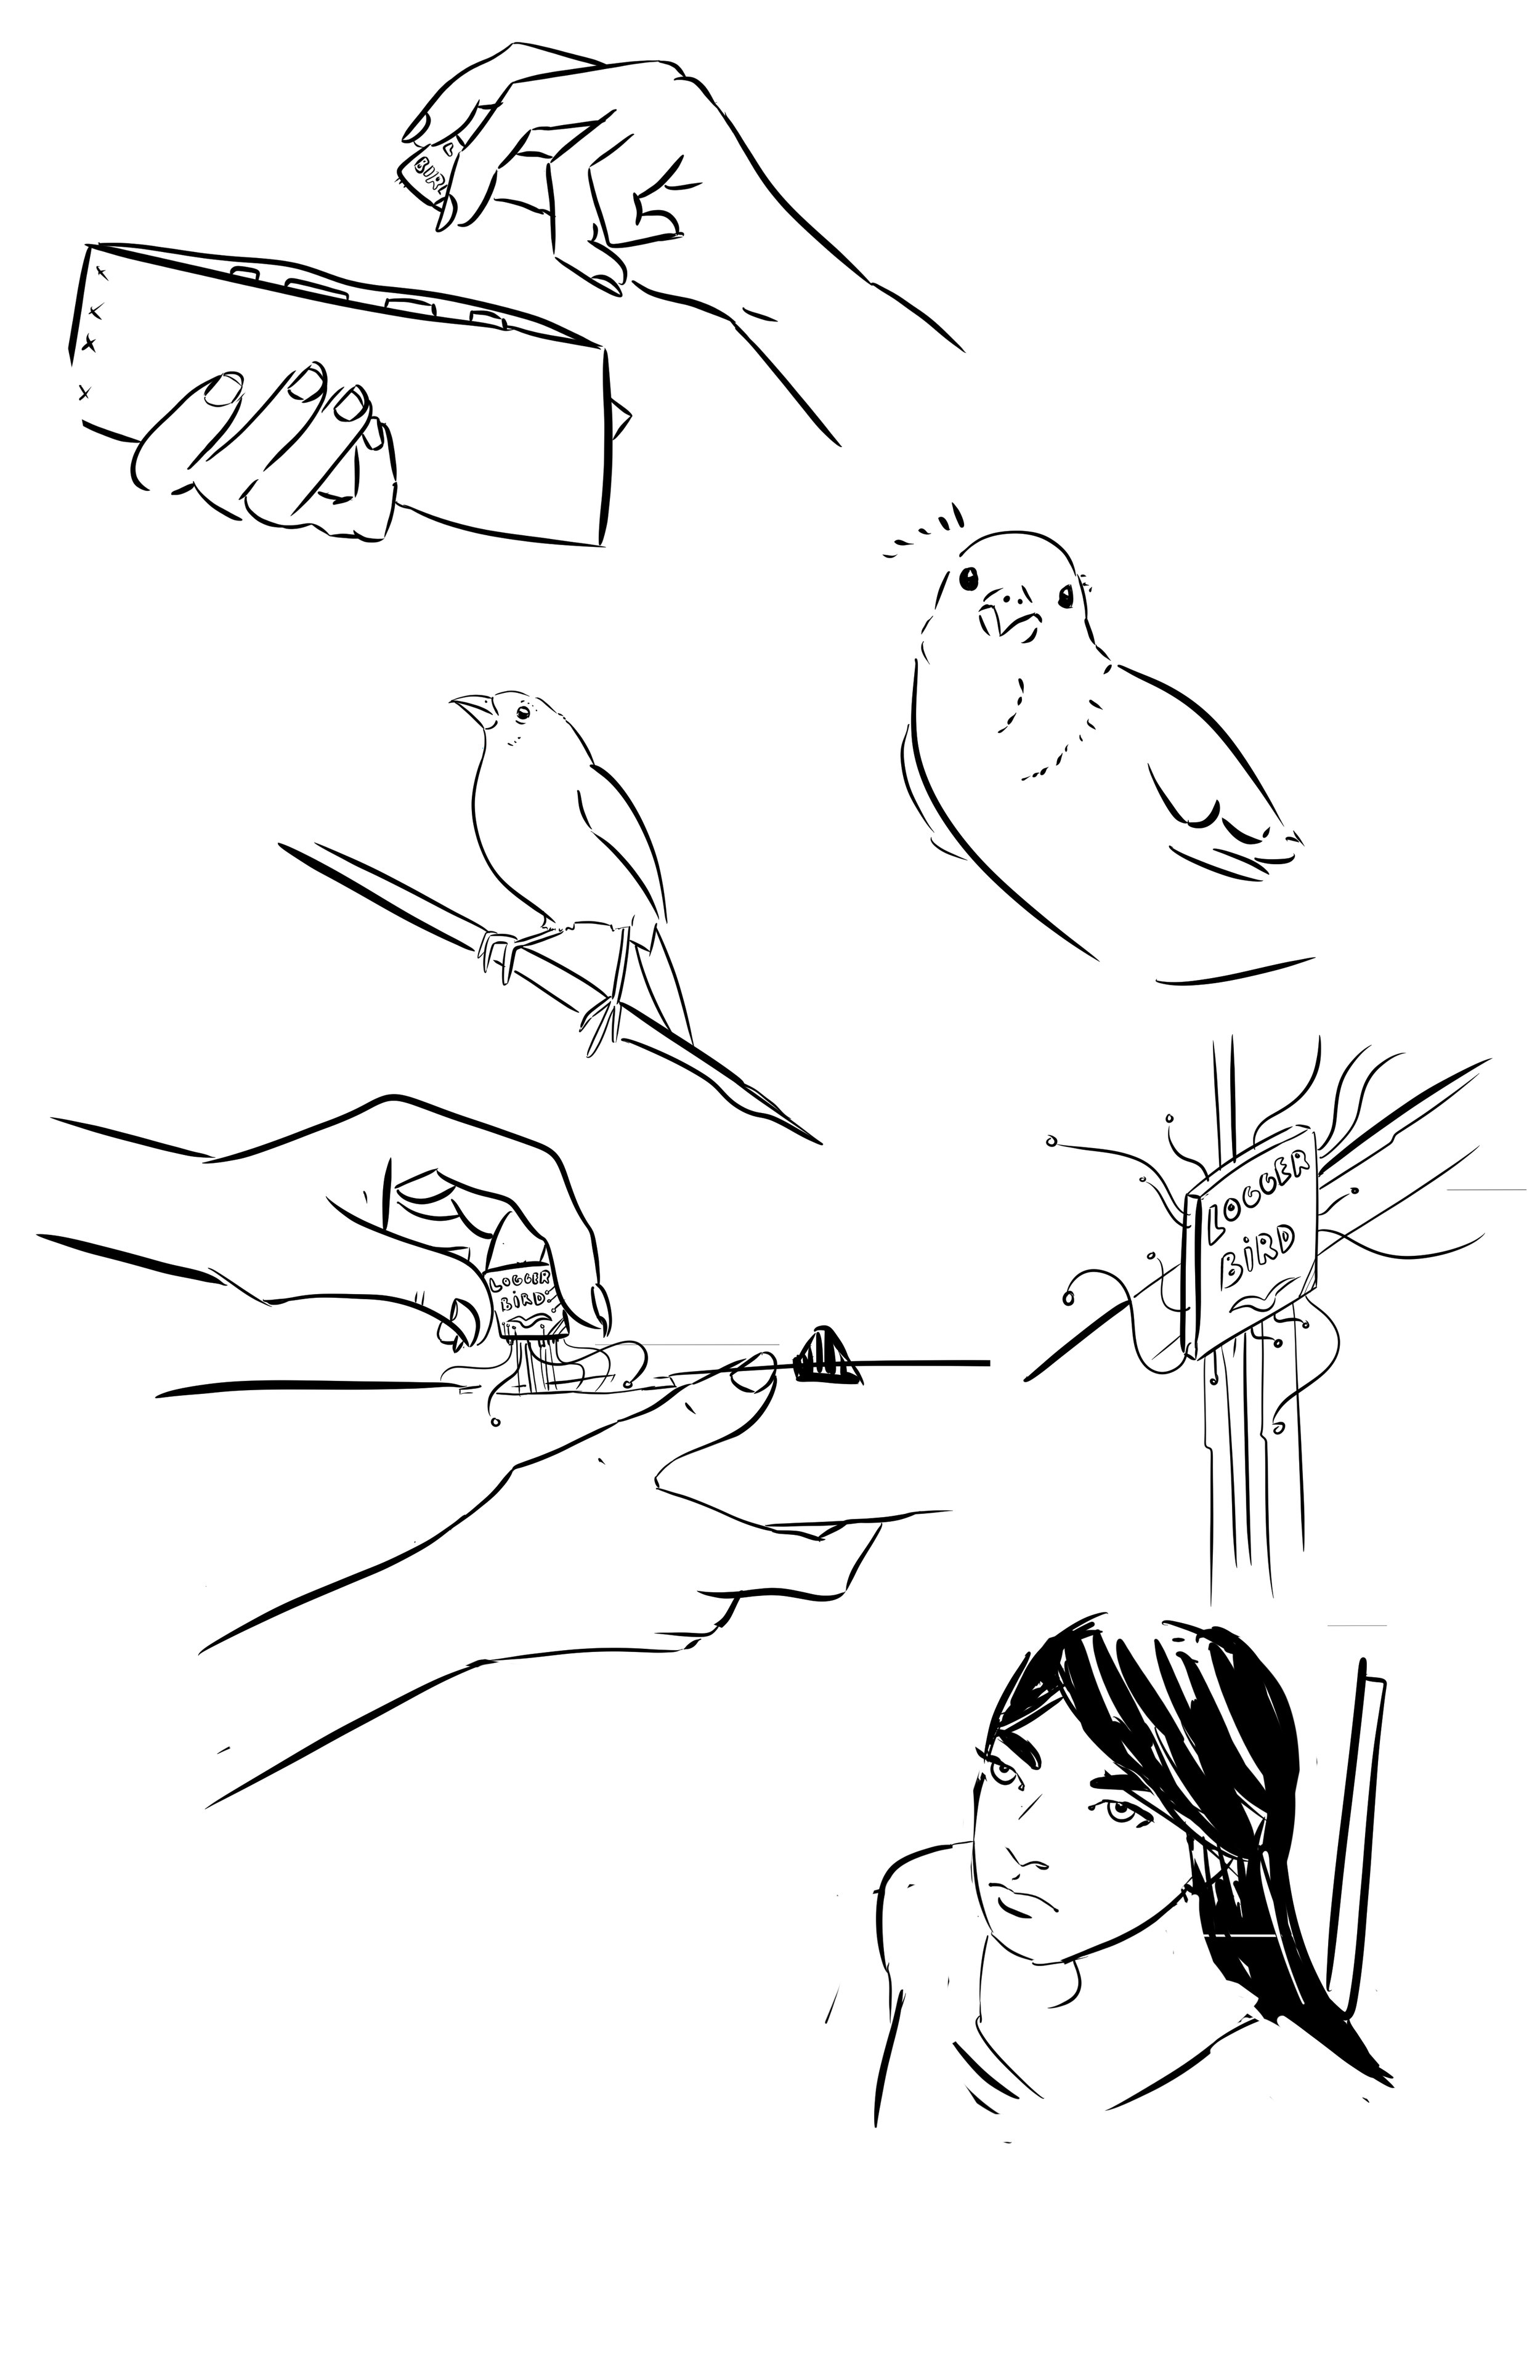 tilted sun line art logger bird and gray woman.JPG